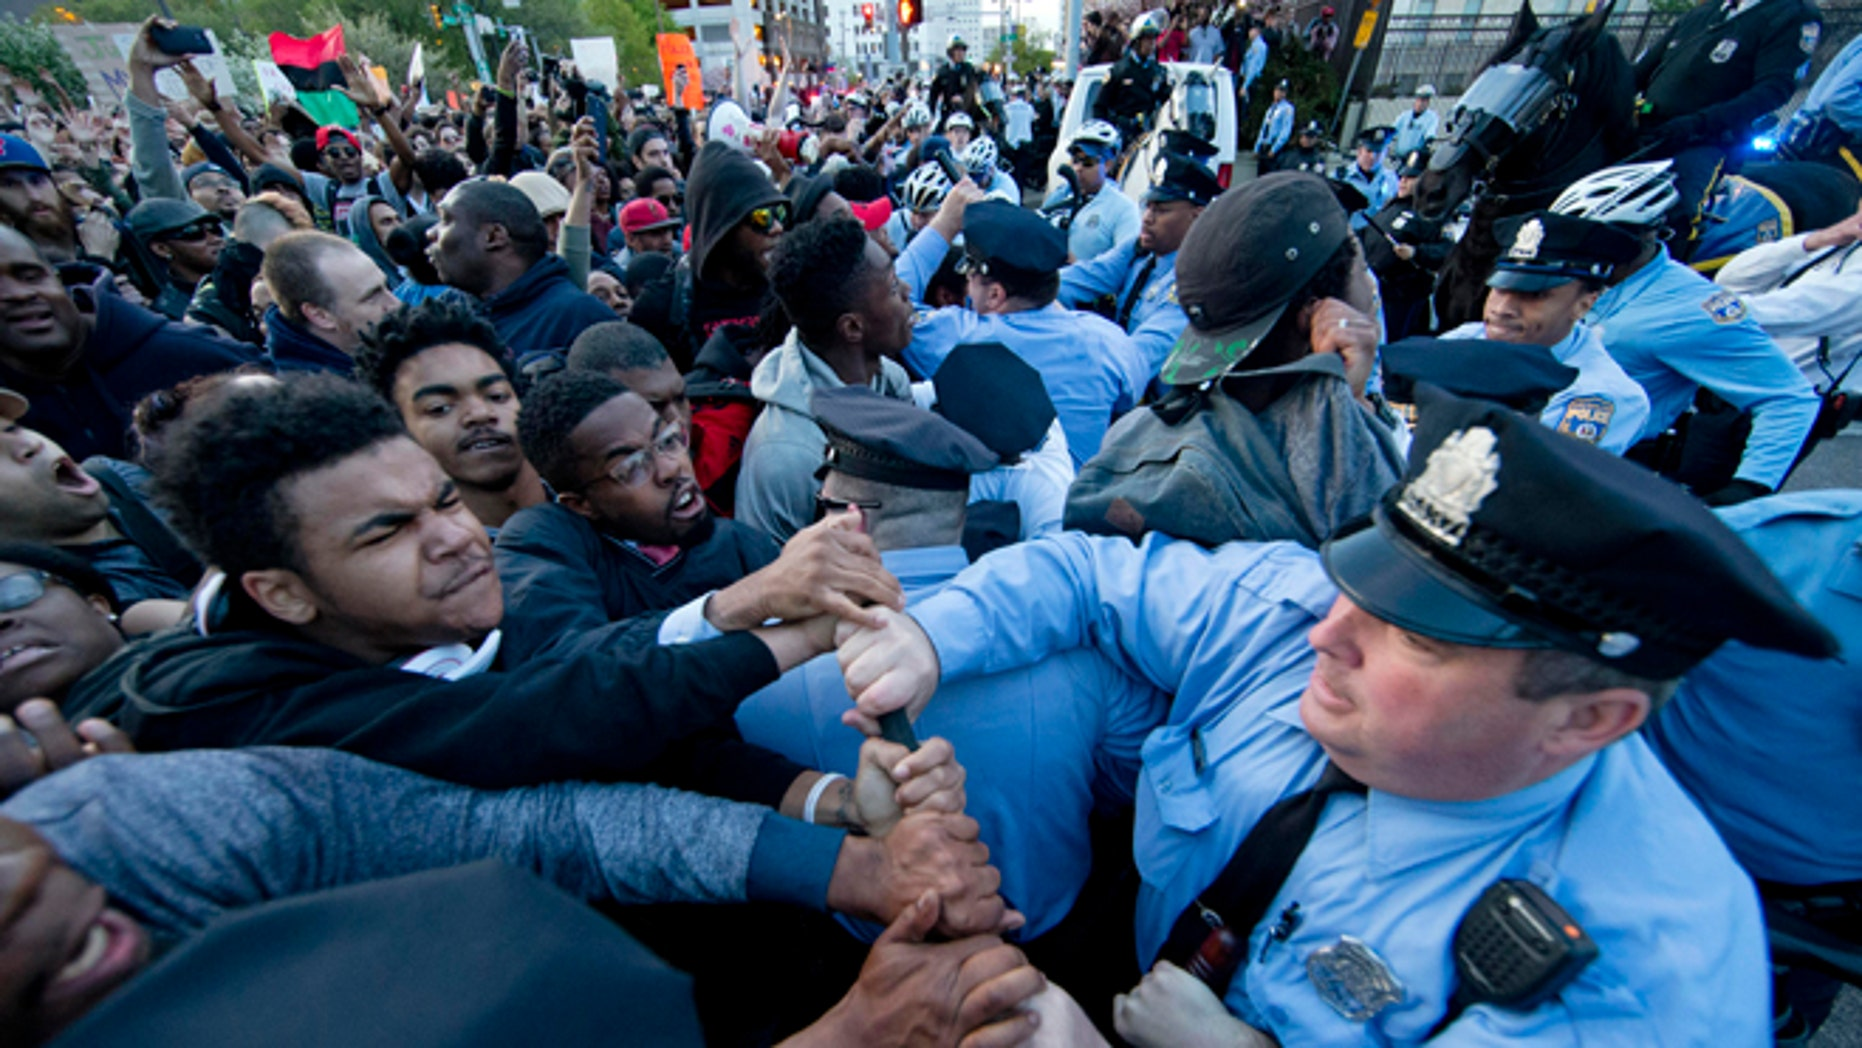 Protesters rush a police line after a rally at City Hall in Philadelphia on Thursday, April 30, 2015. The event in Philadelphia follows days of unrest in Baltimore amid Freddie Gray's police-custody death. (AP Photo/Matt Rourke)